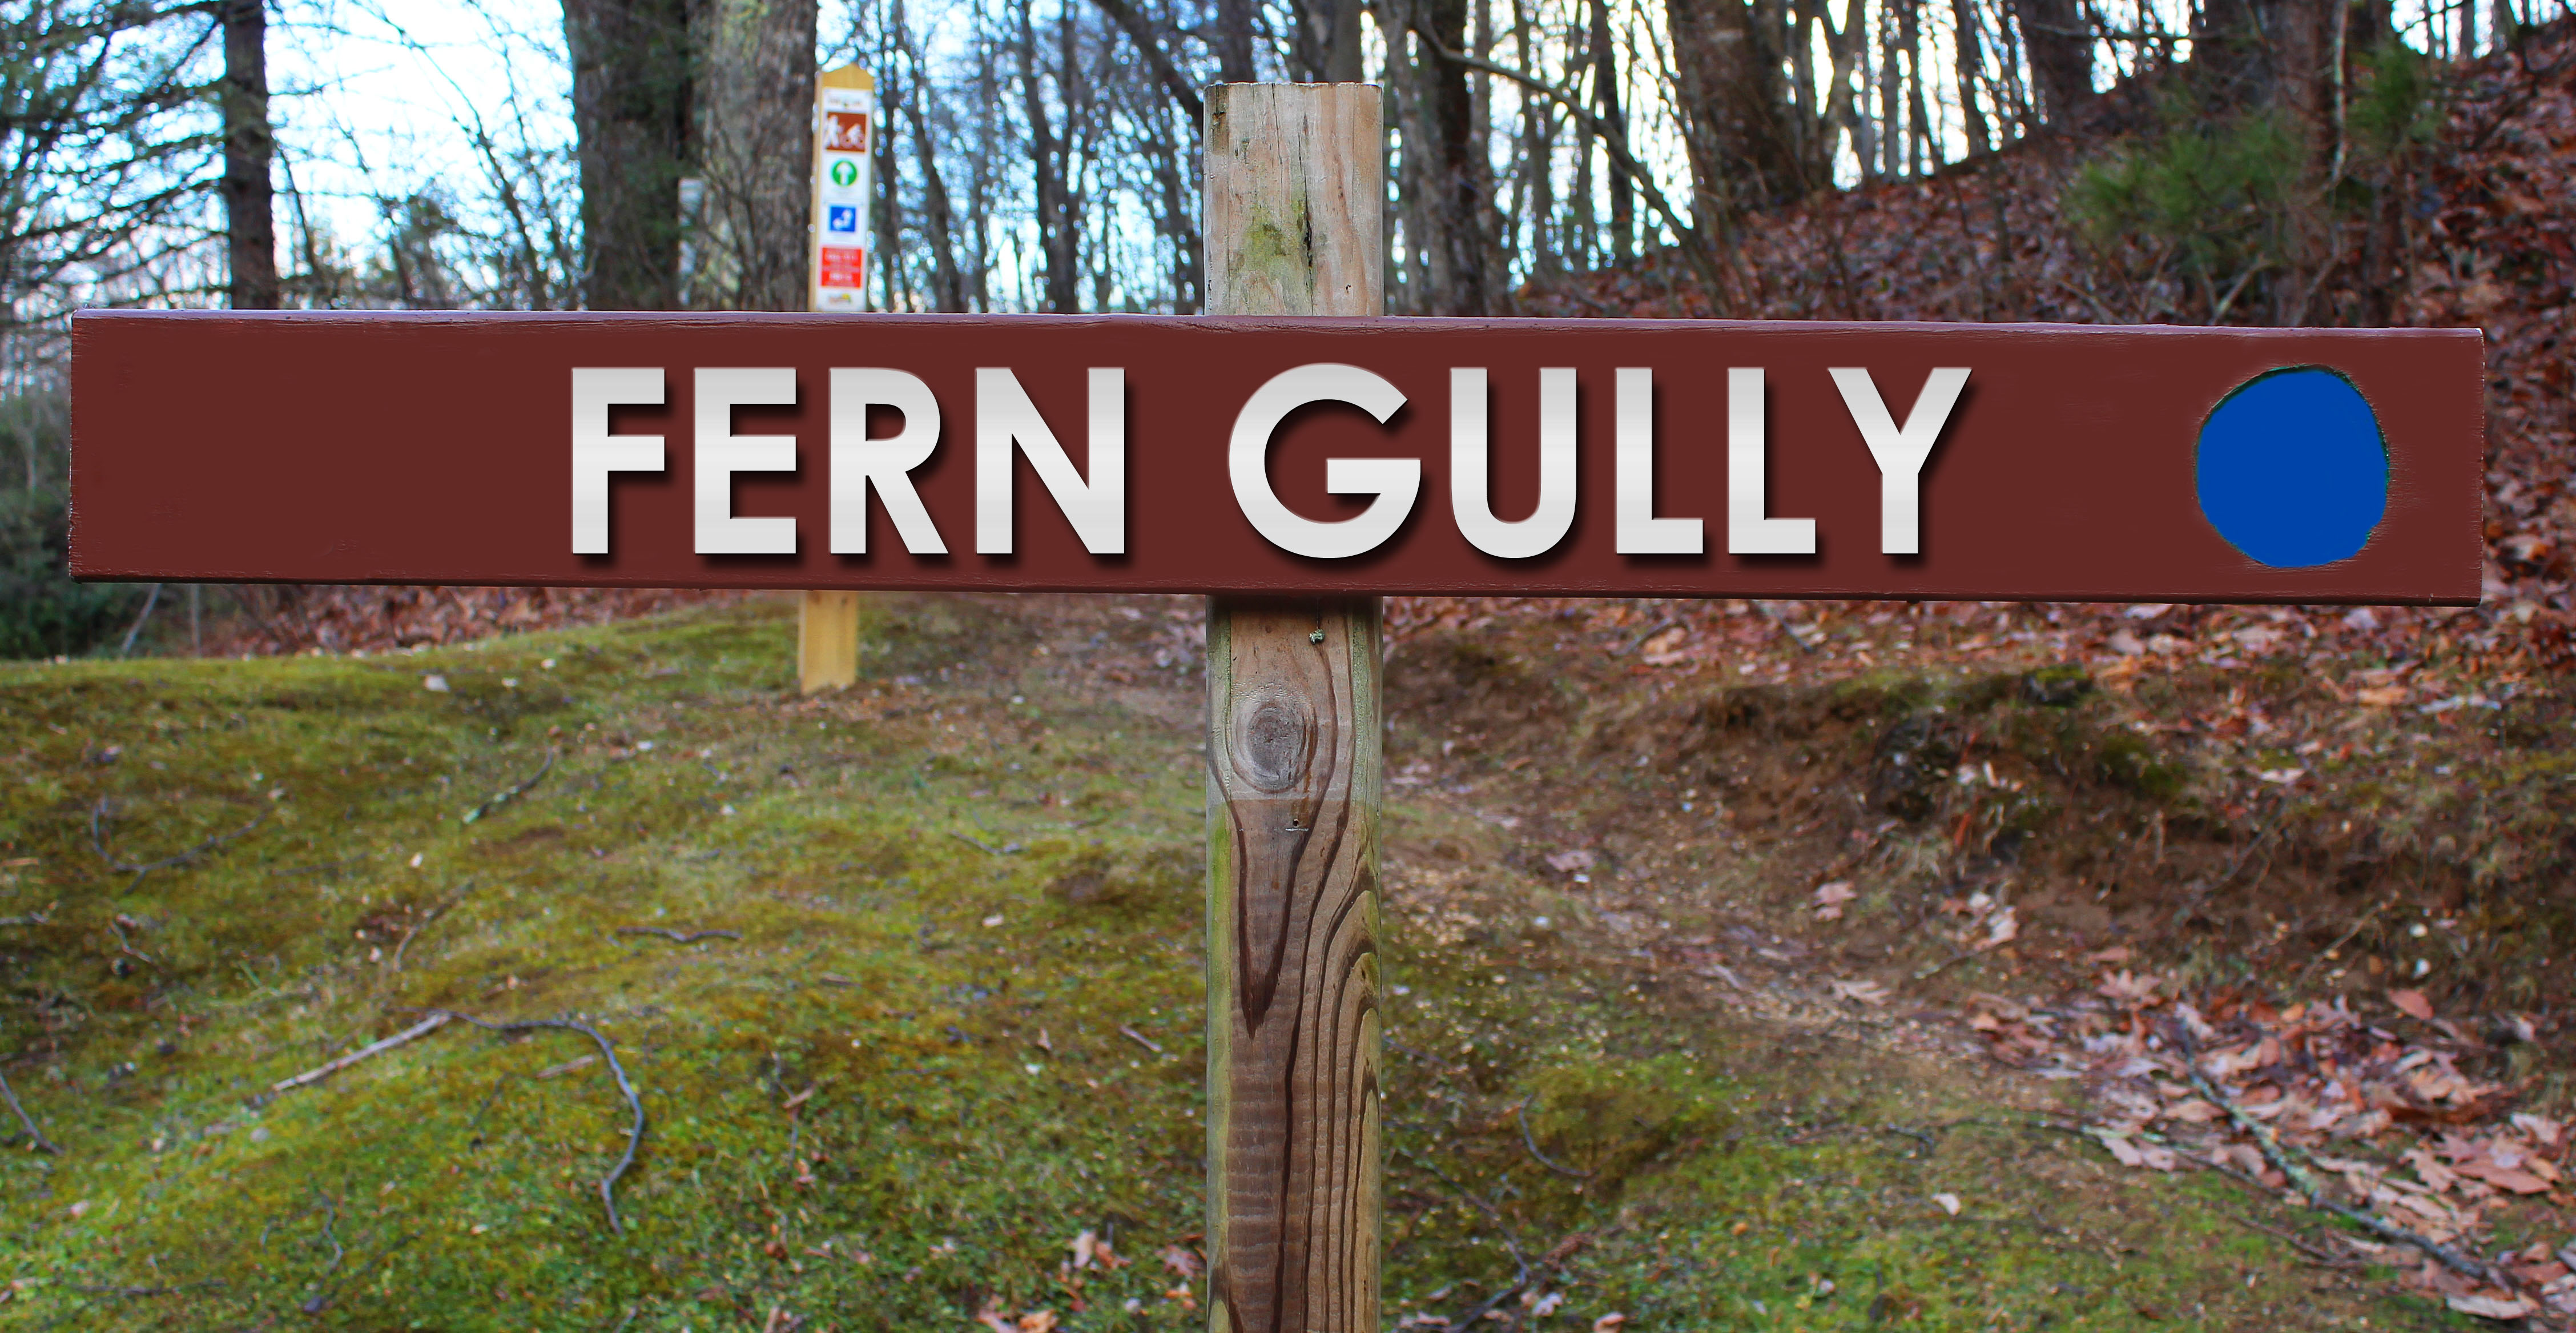 Picture of Fern Gully trail sign